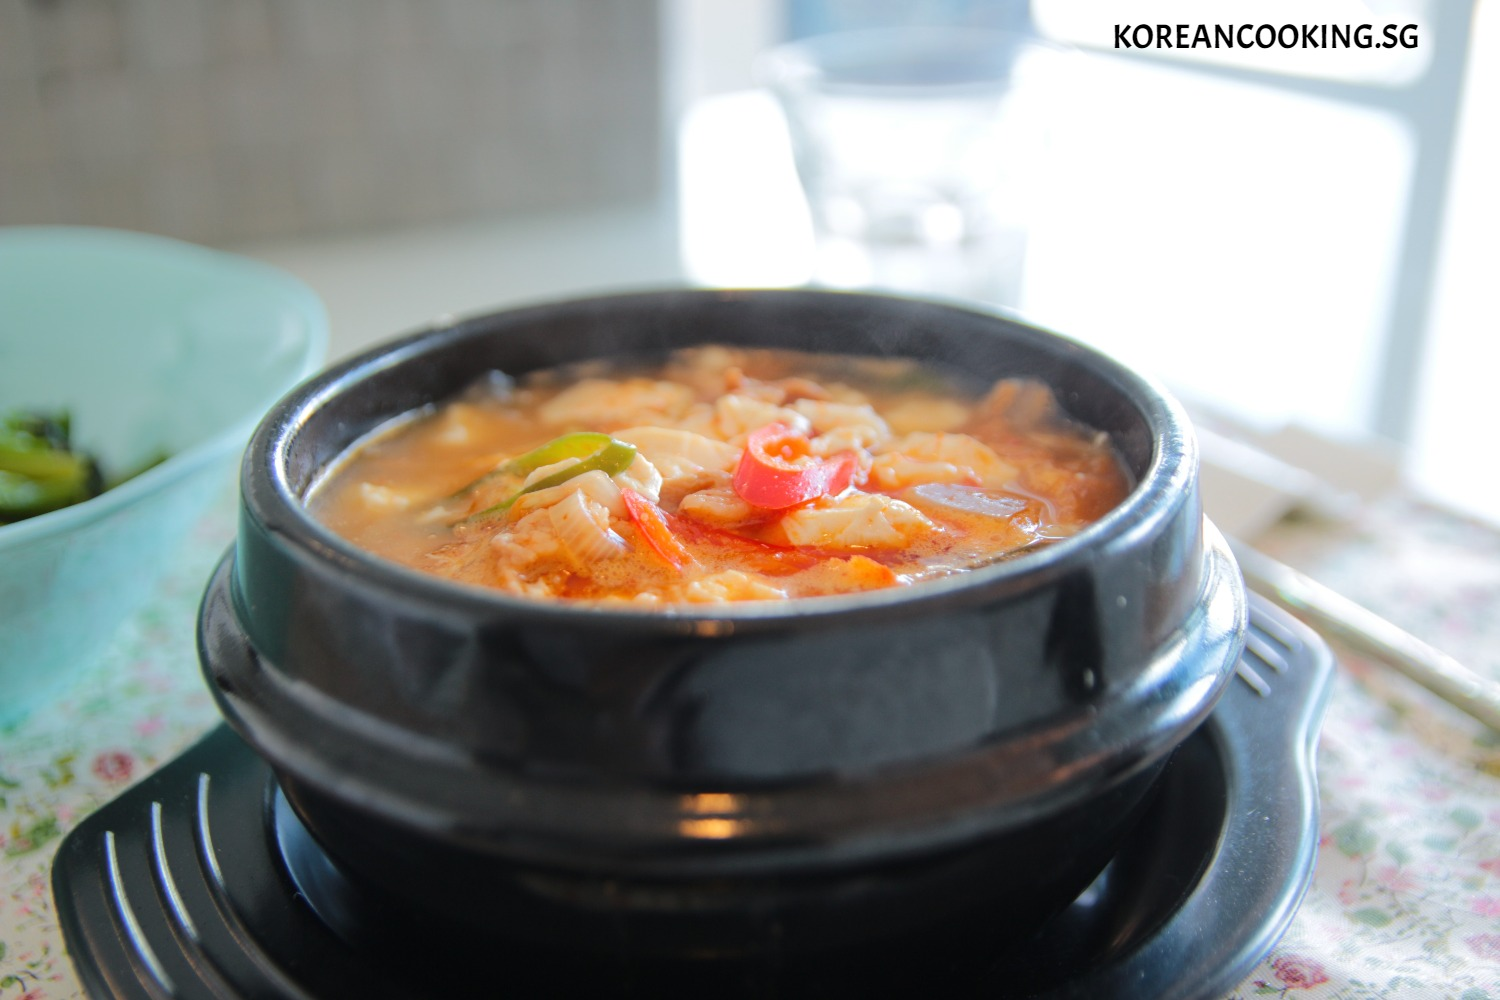 Jjigae (Spicy soup)